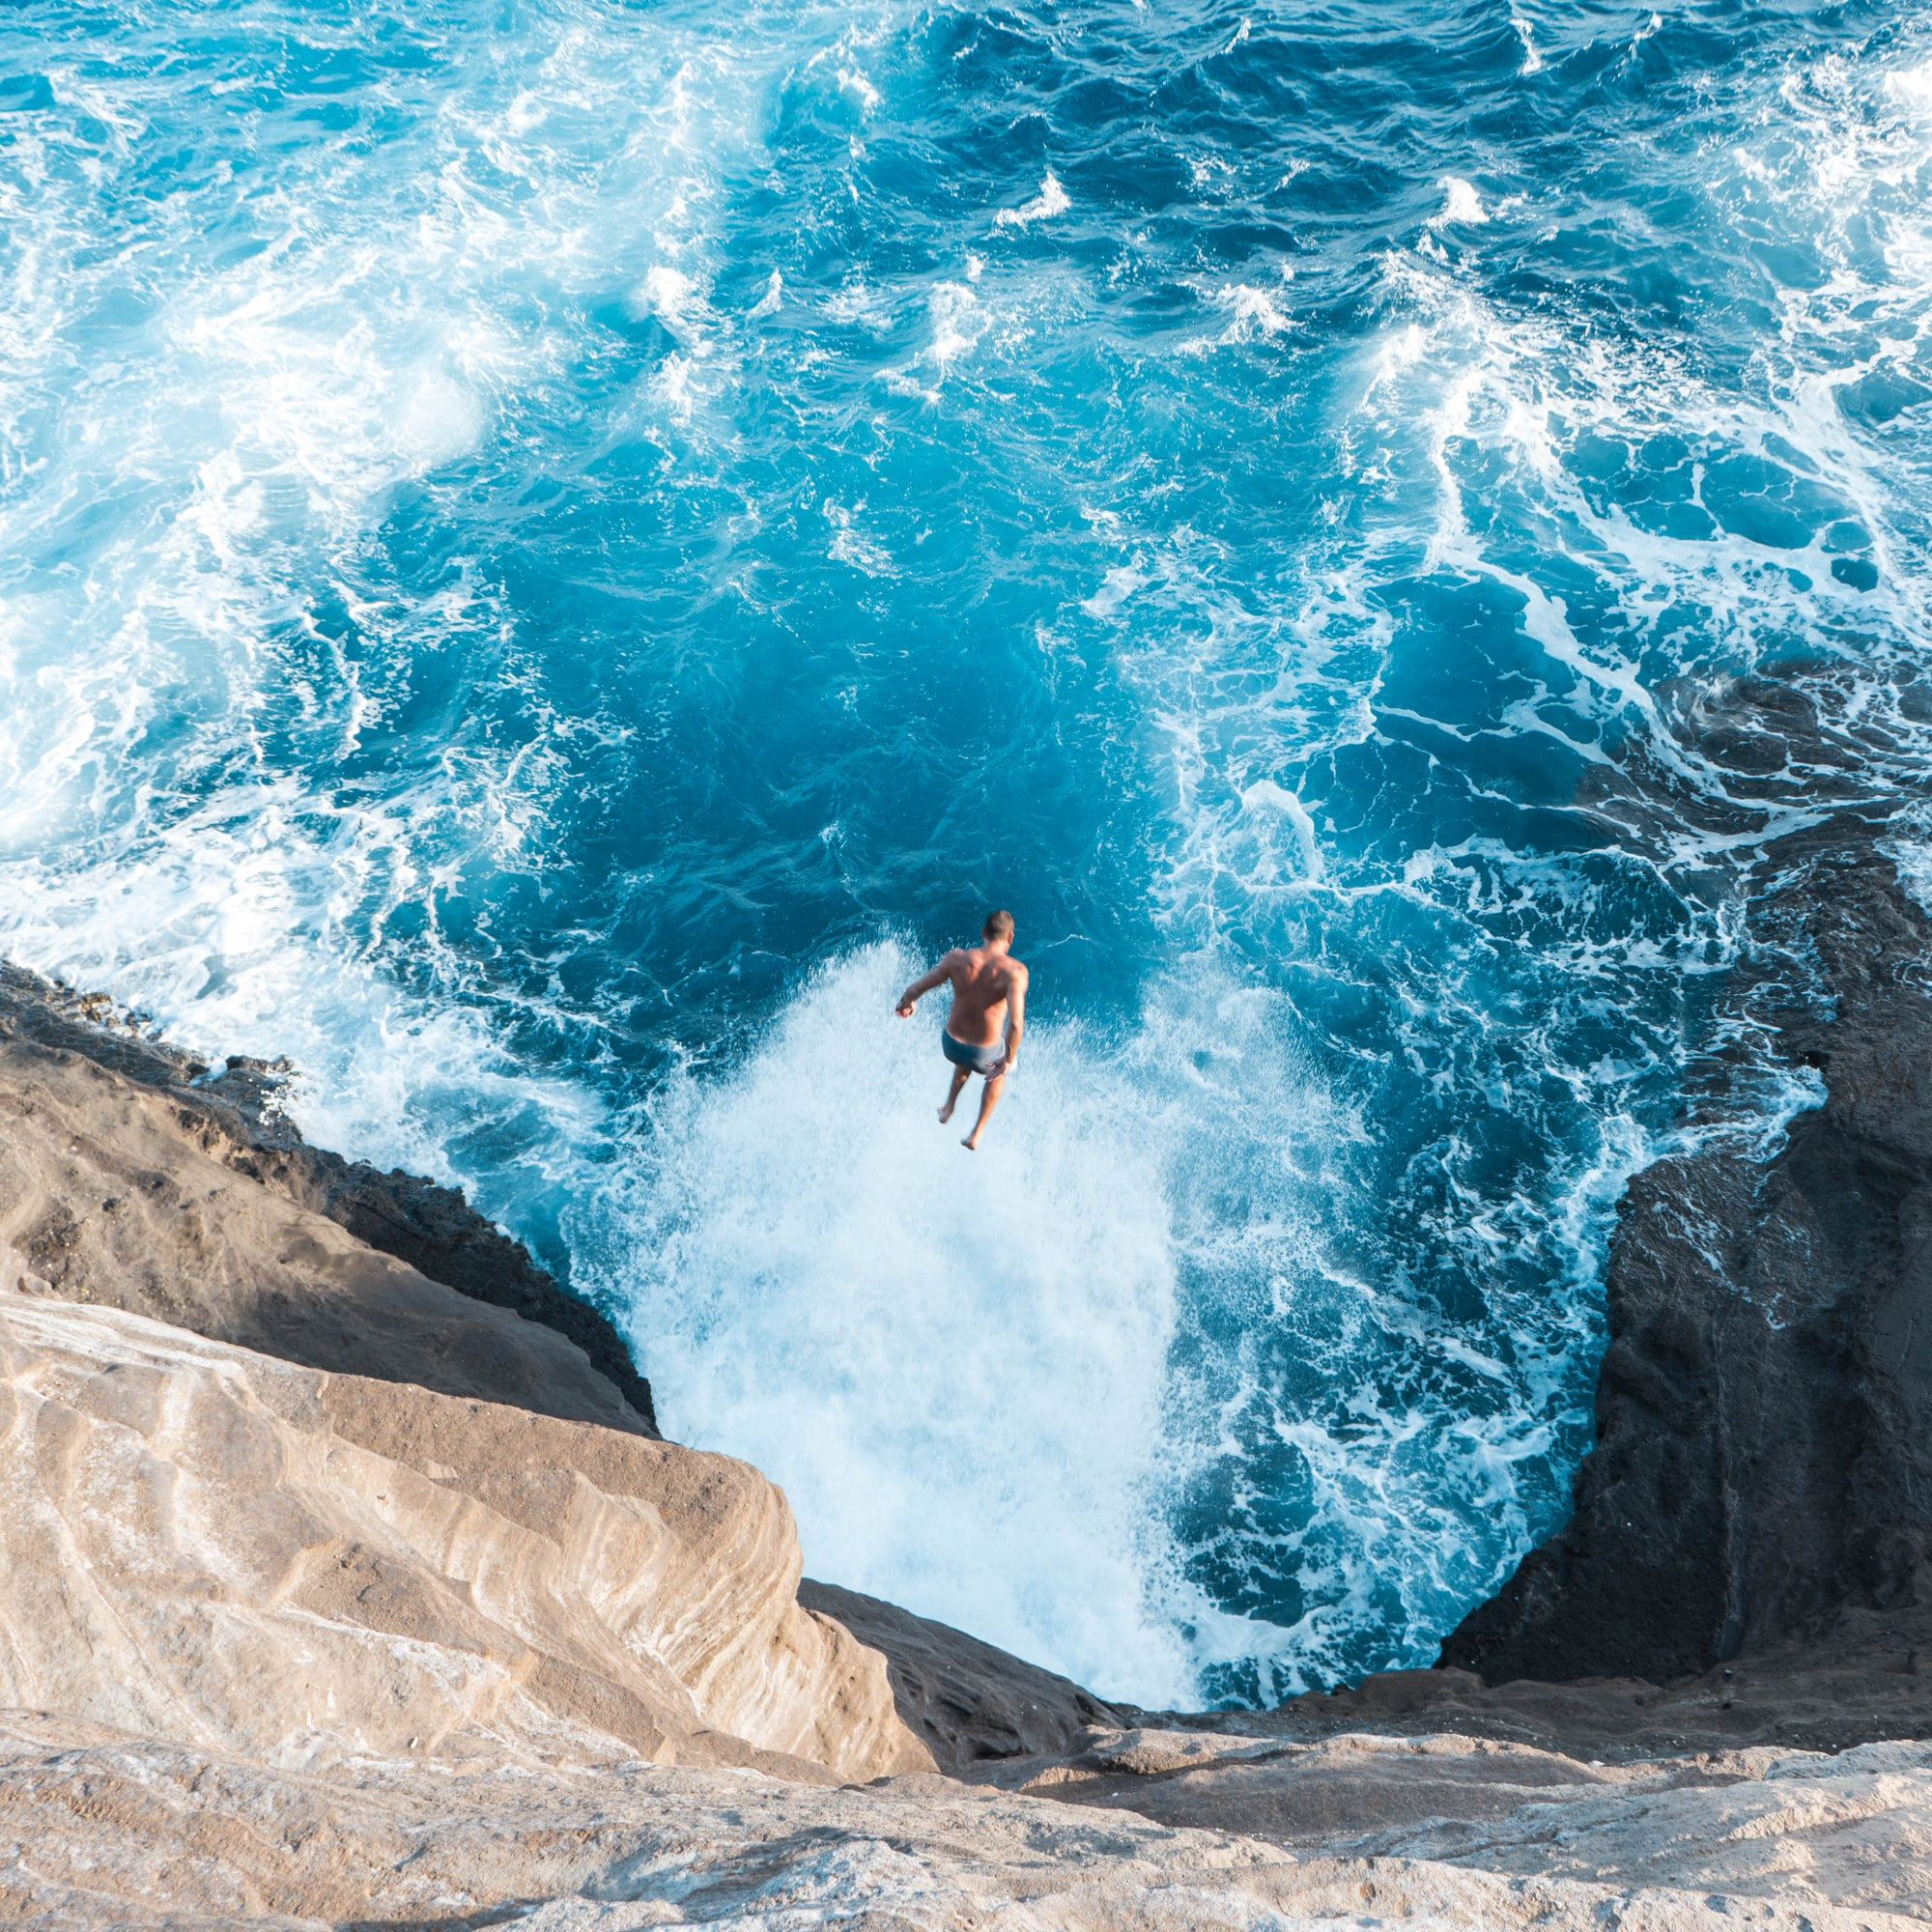 A friend of mine, jumping off of Hawaii's spitting cave